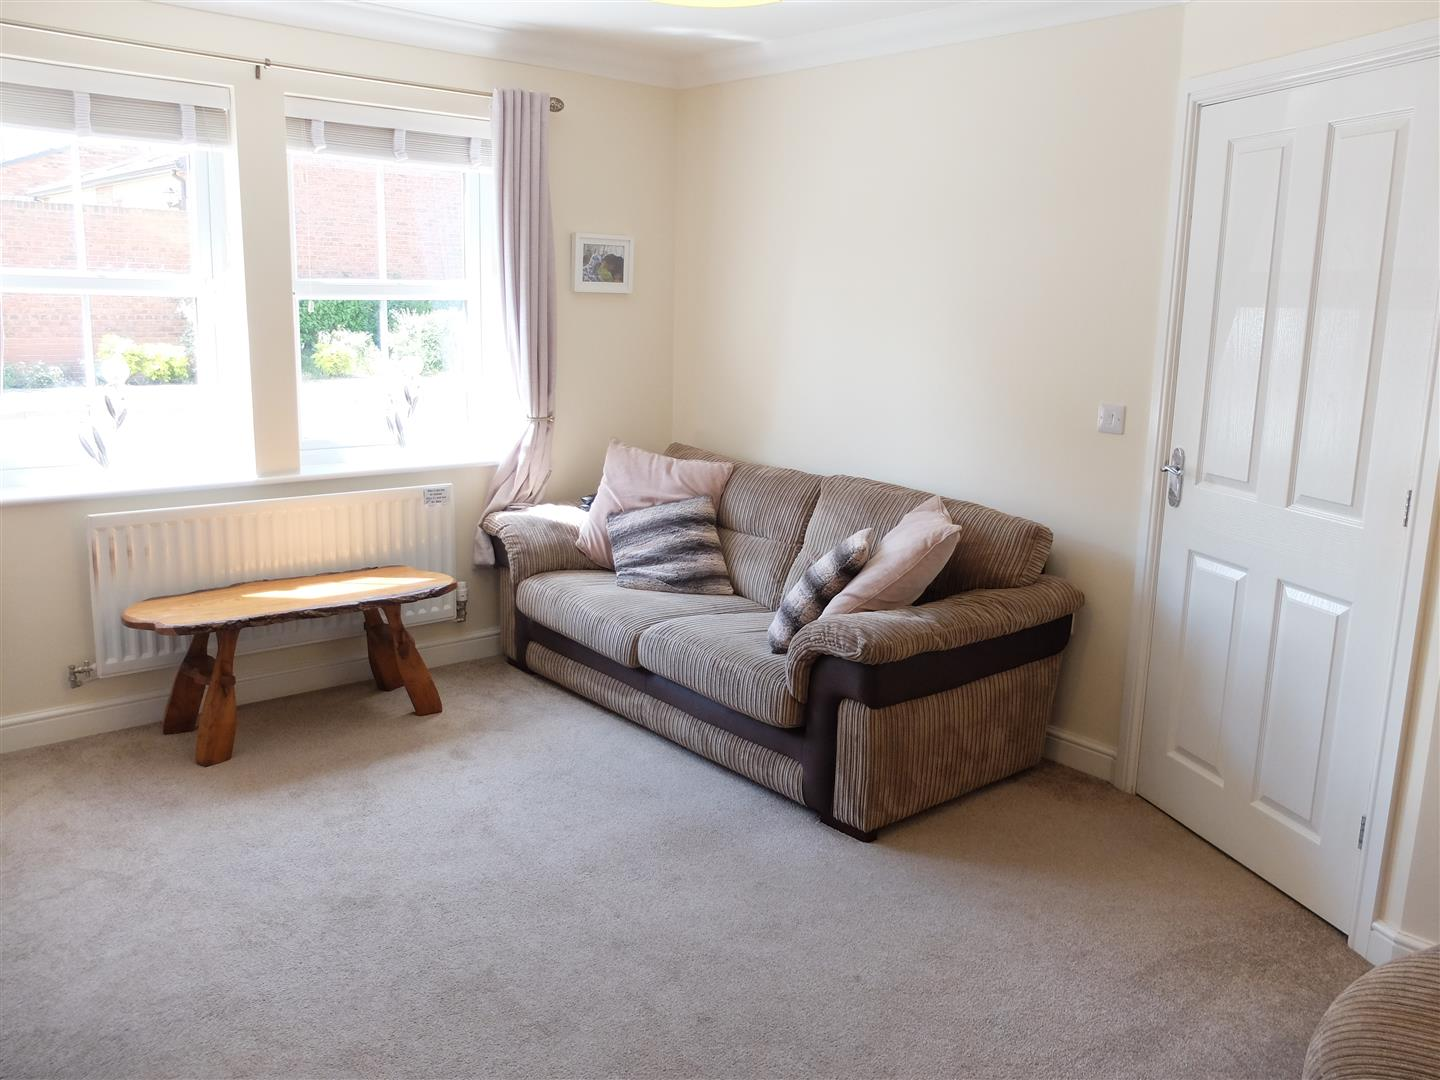 3 Bedrooms House - Semi-Detached On Sale 3 Goodwood Drive Carlisle